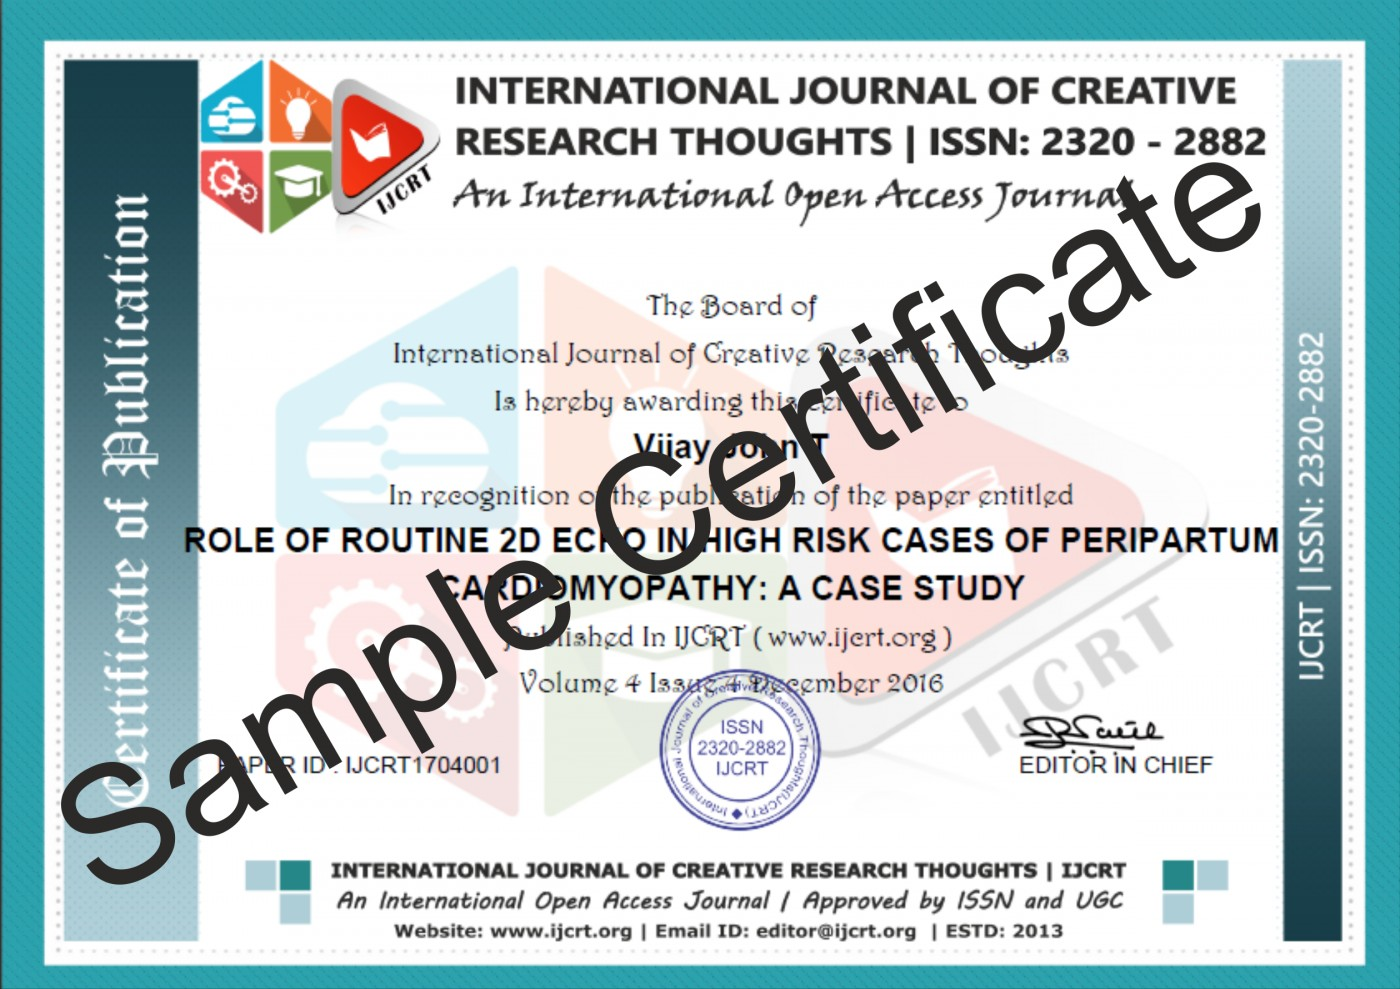 018 Research Paper Sample Certificate Best Journals To Publish Stunning Papers In Computer Science List Of 1400